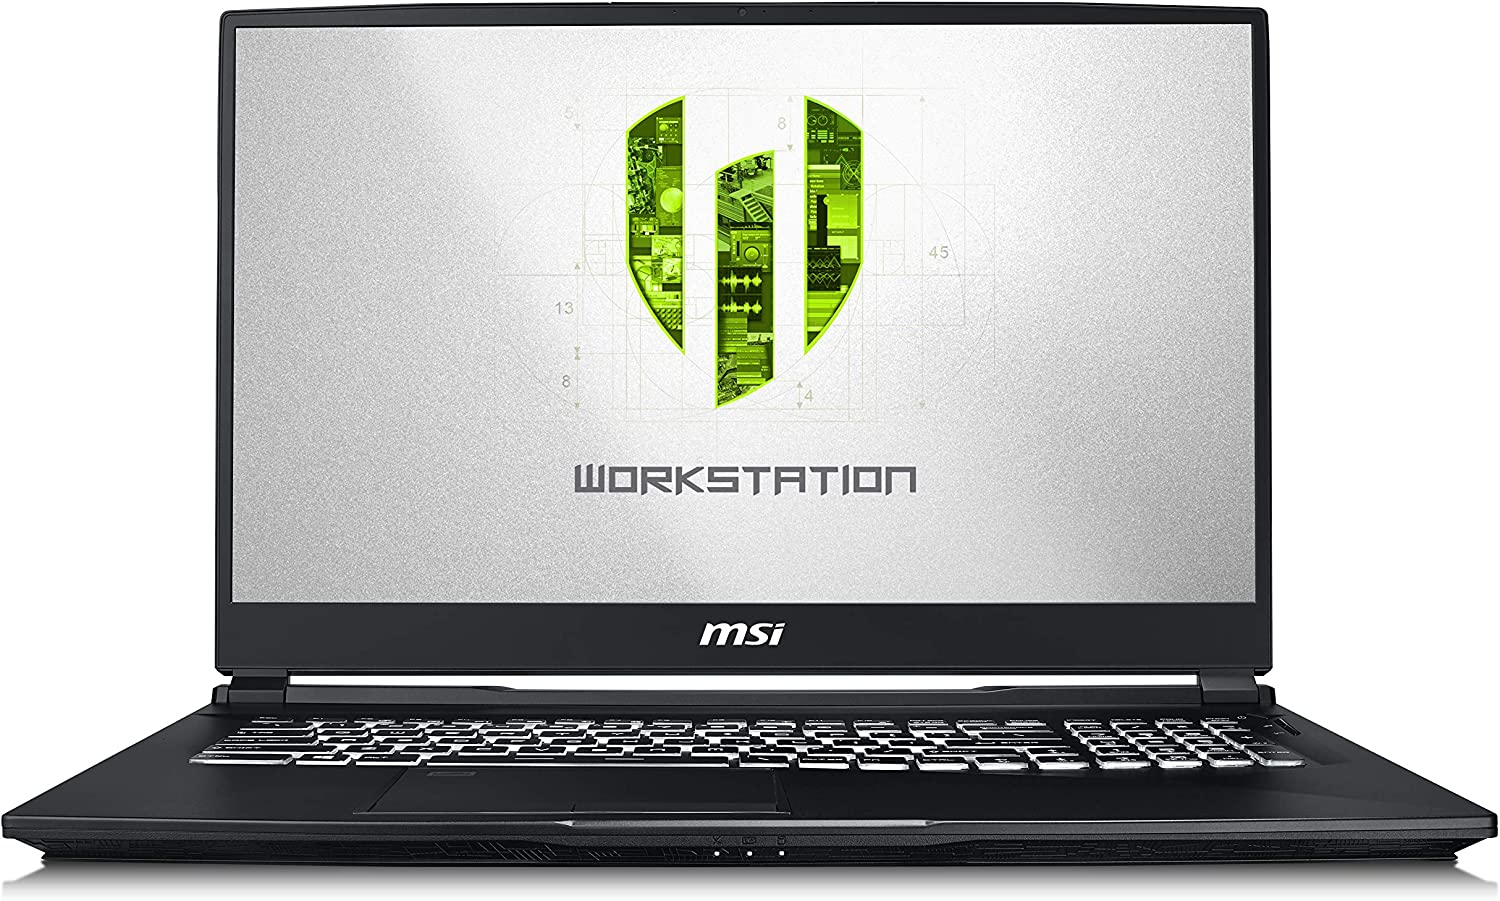 "MSI WE75 9Tk-654 17.3"" Mobile Workstation, Intel Core i7-9750H, NVIDIA Quadro RTX 3000, 32GB, 512G NVMe SSD, Win10 Pro"